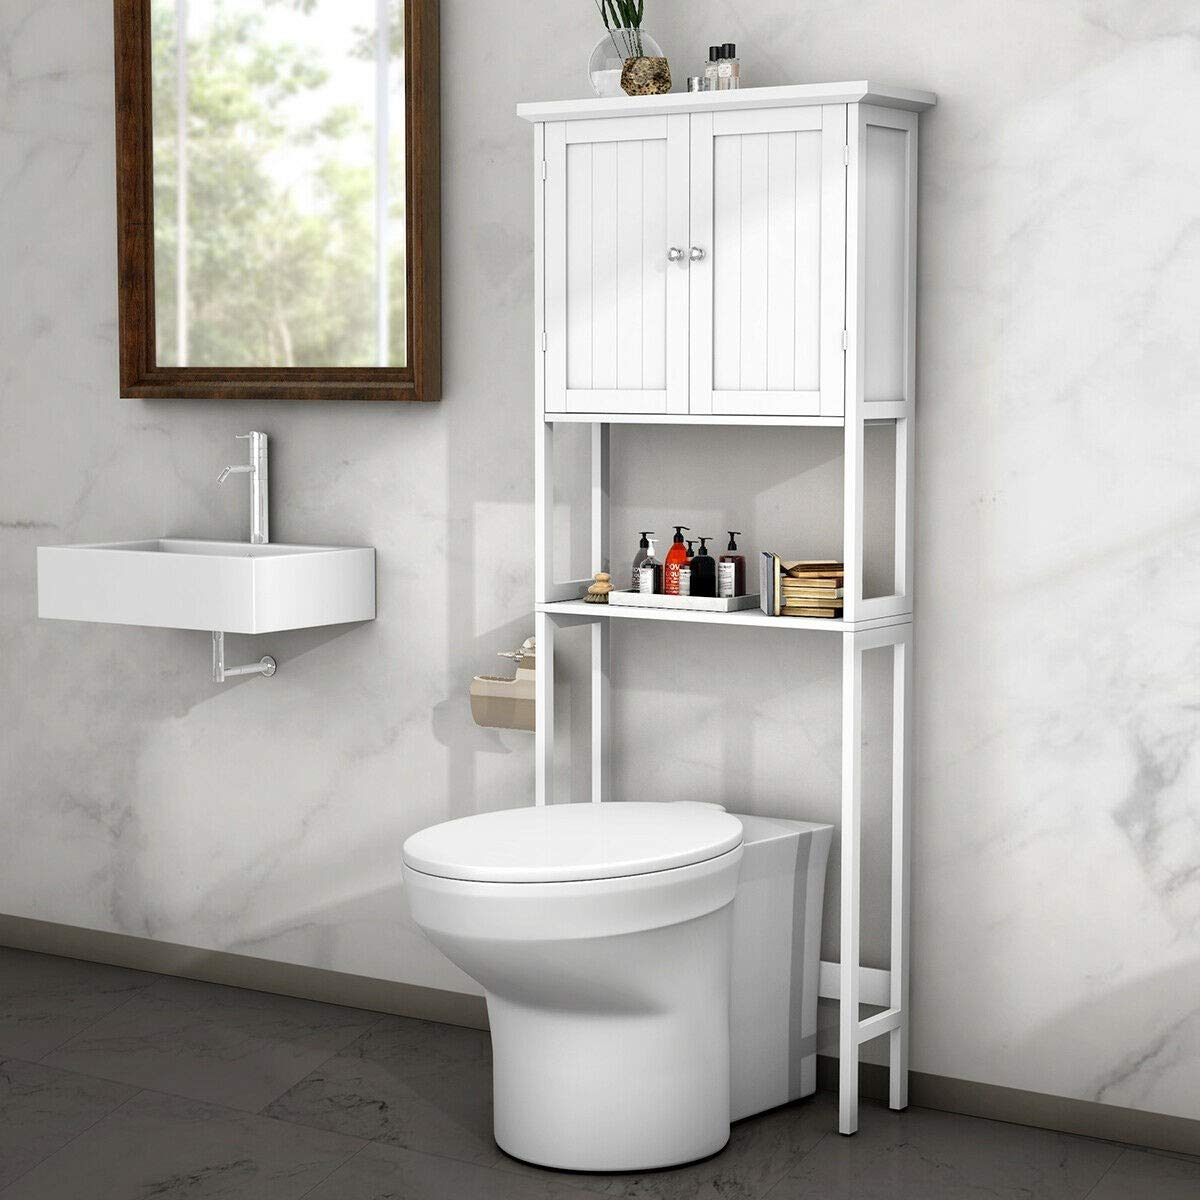 BestComfort Free Standing Over-The-Toilet Space Saver, Bathroom Cabinet Organizer Over Toilet,Storage Cabinet with Adjustable Shelf for Bathroom by BestComfort